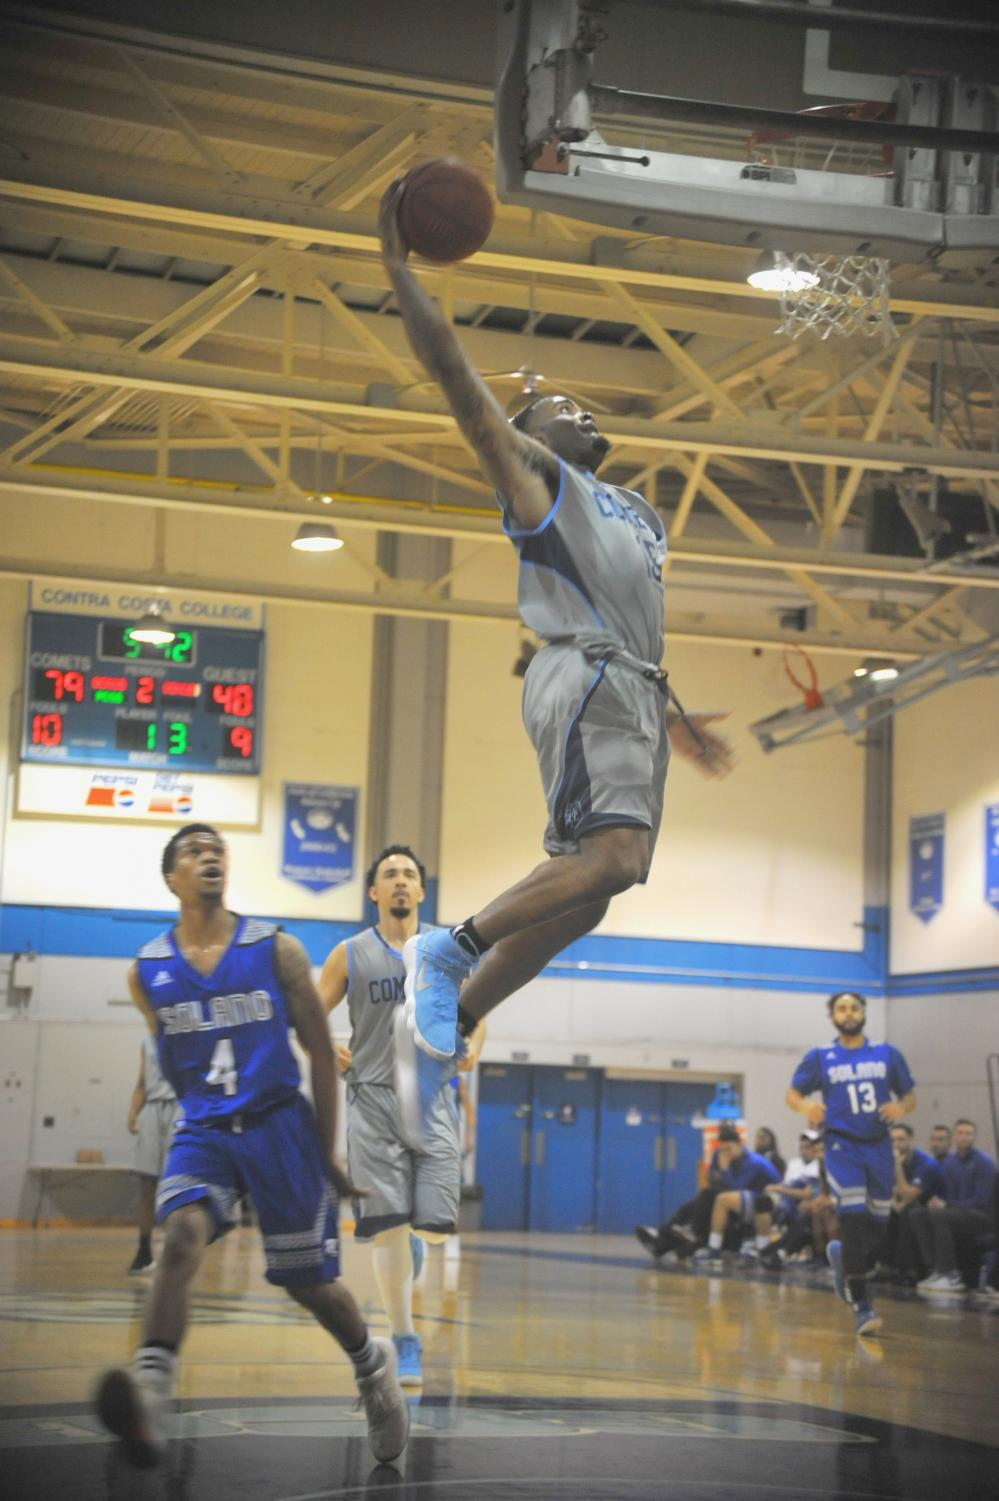 Guard Kemare Wright dunks during Contra Costa College's 92-63 victory against Solano Community College on Jan. 31 in the Gym.